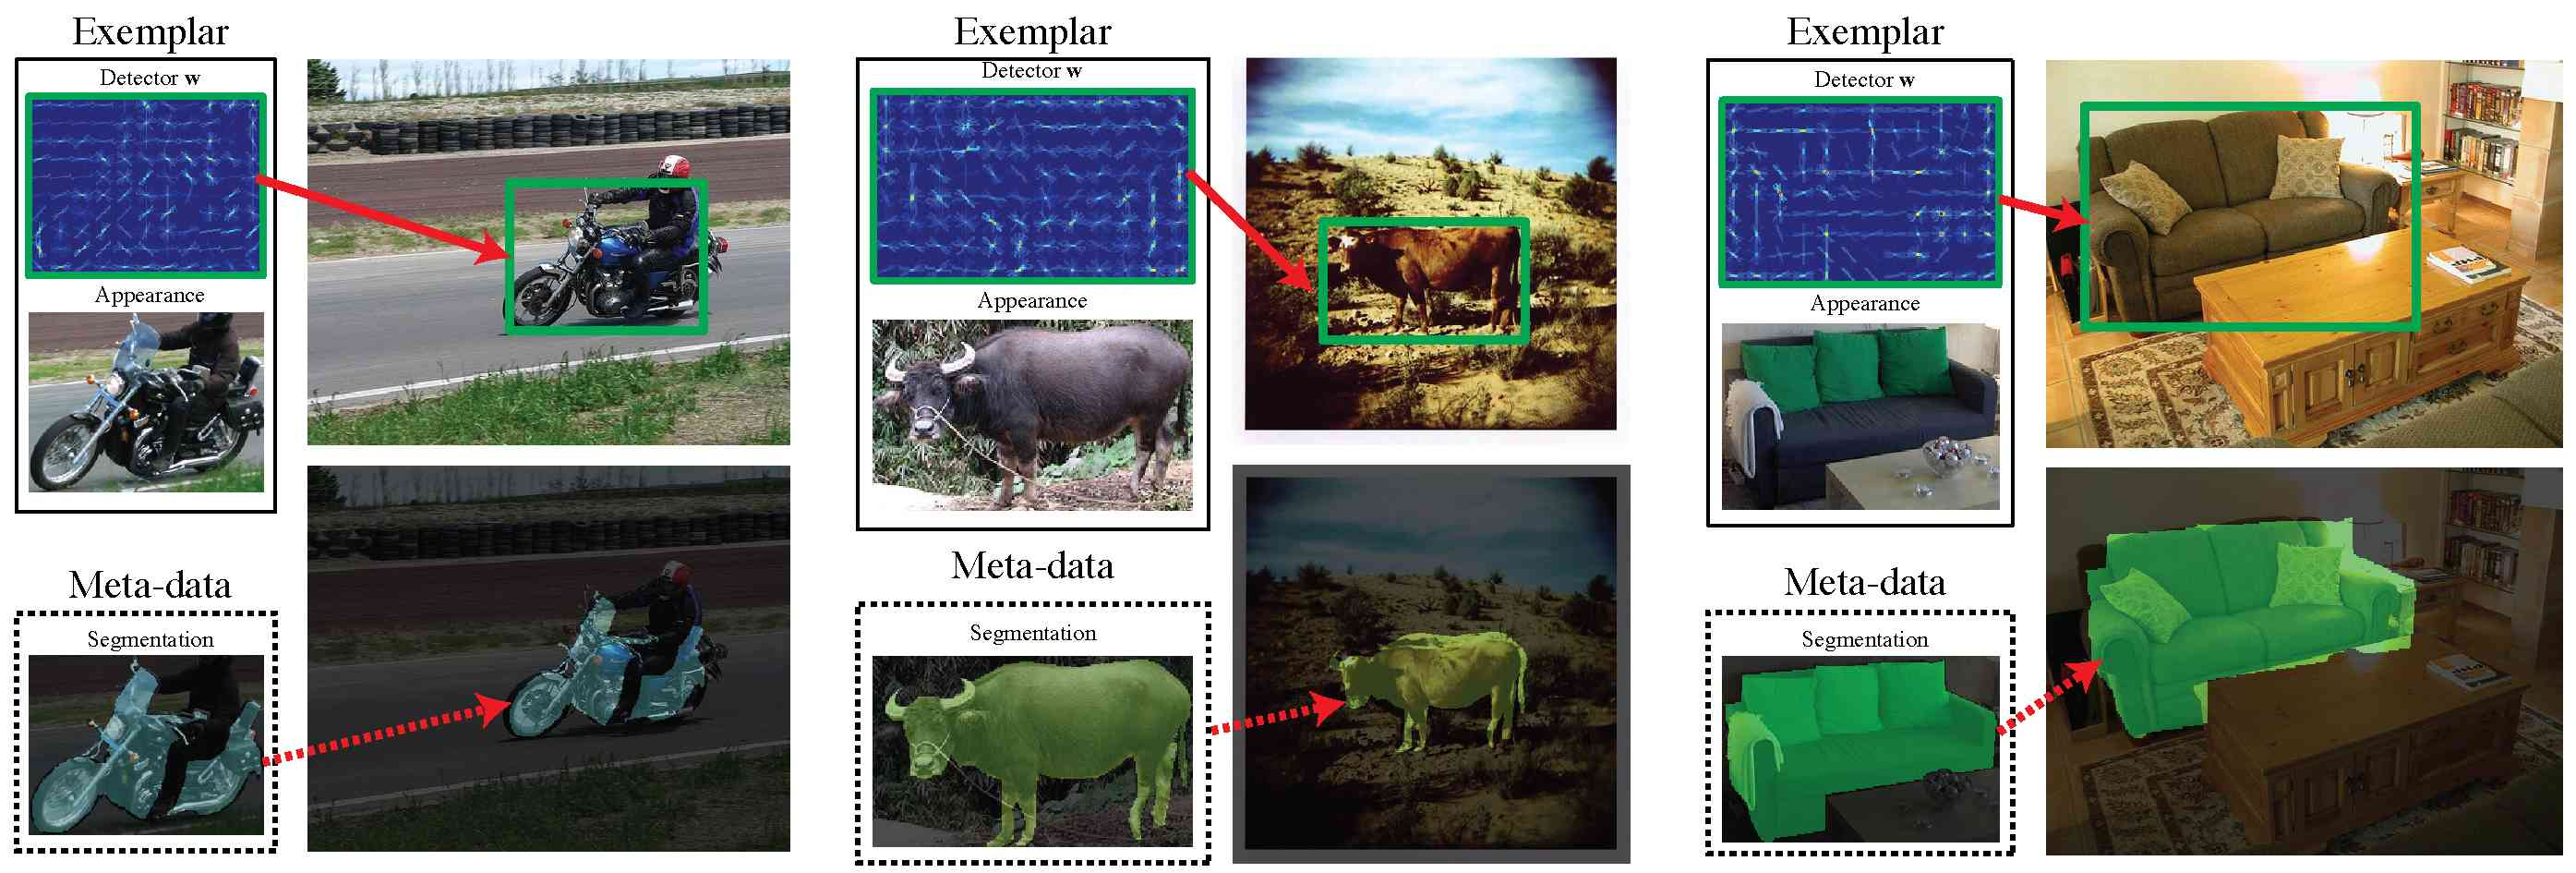 Ensemble of Exemplar-SVMs for Object Detection and Beyond